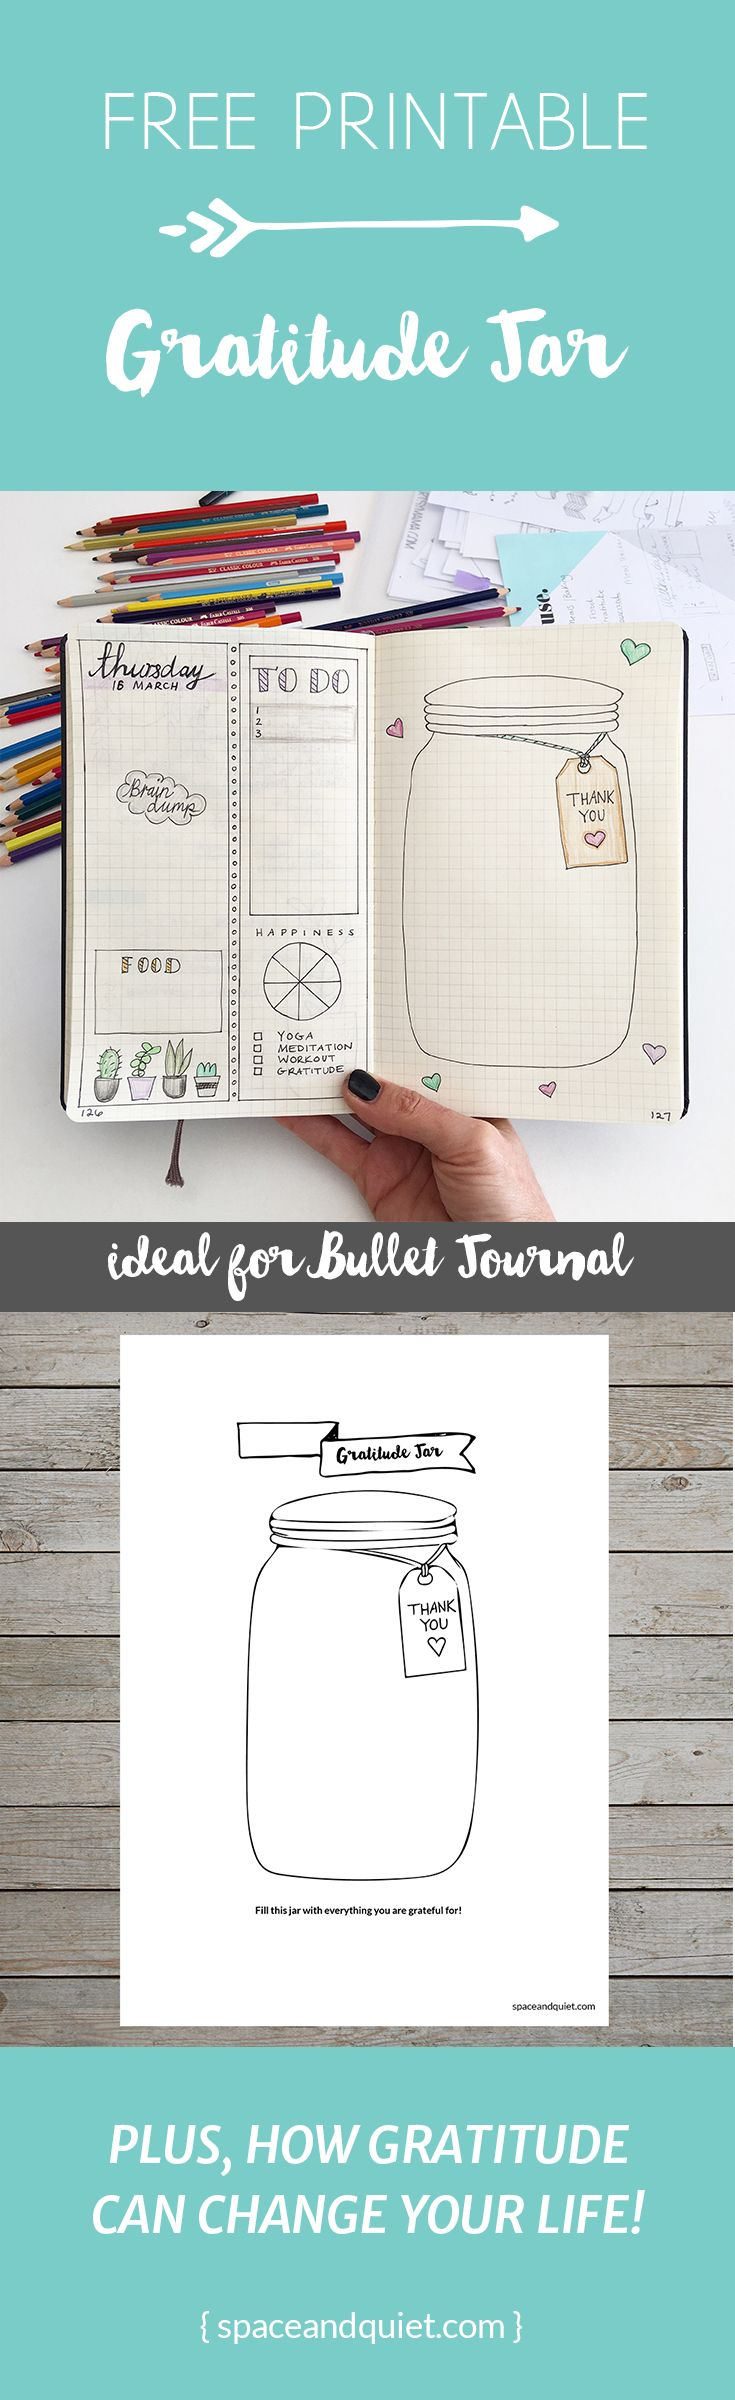 How to cultivate a weekly gratitude practice in the bullet journal. Click through to download a free printable gratitude jar.